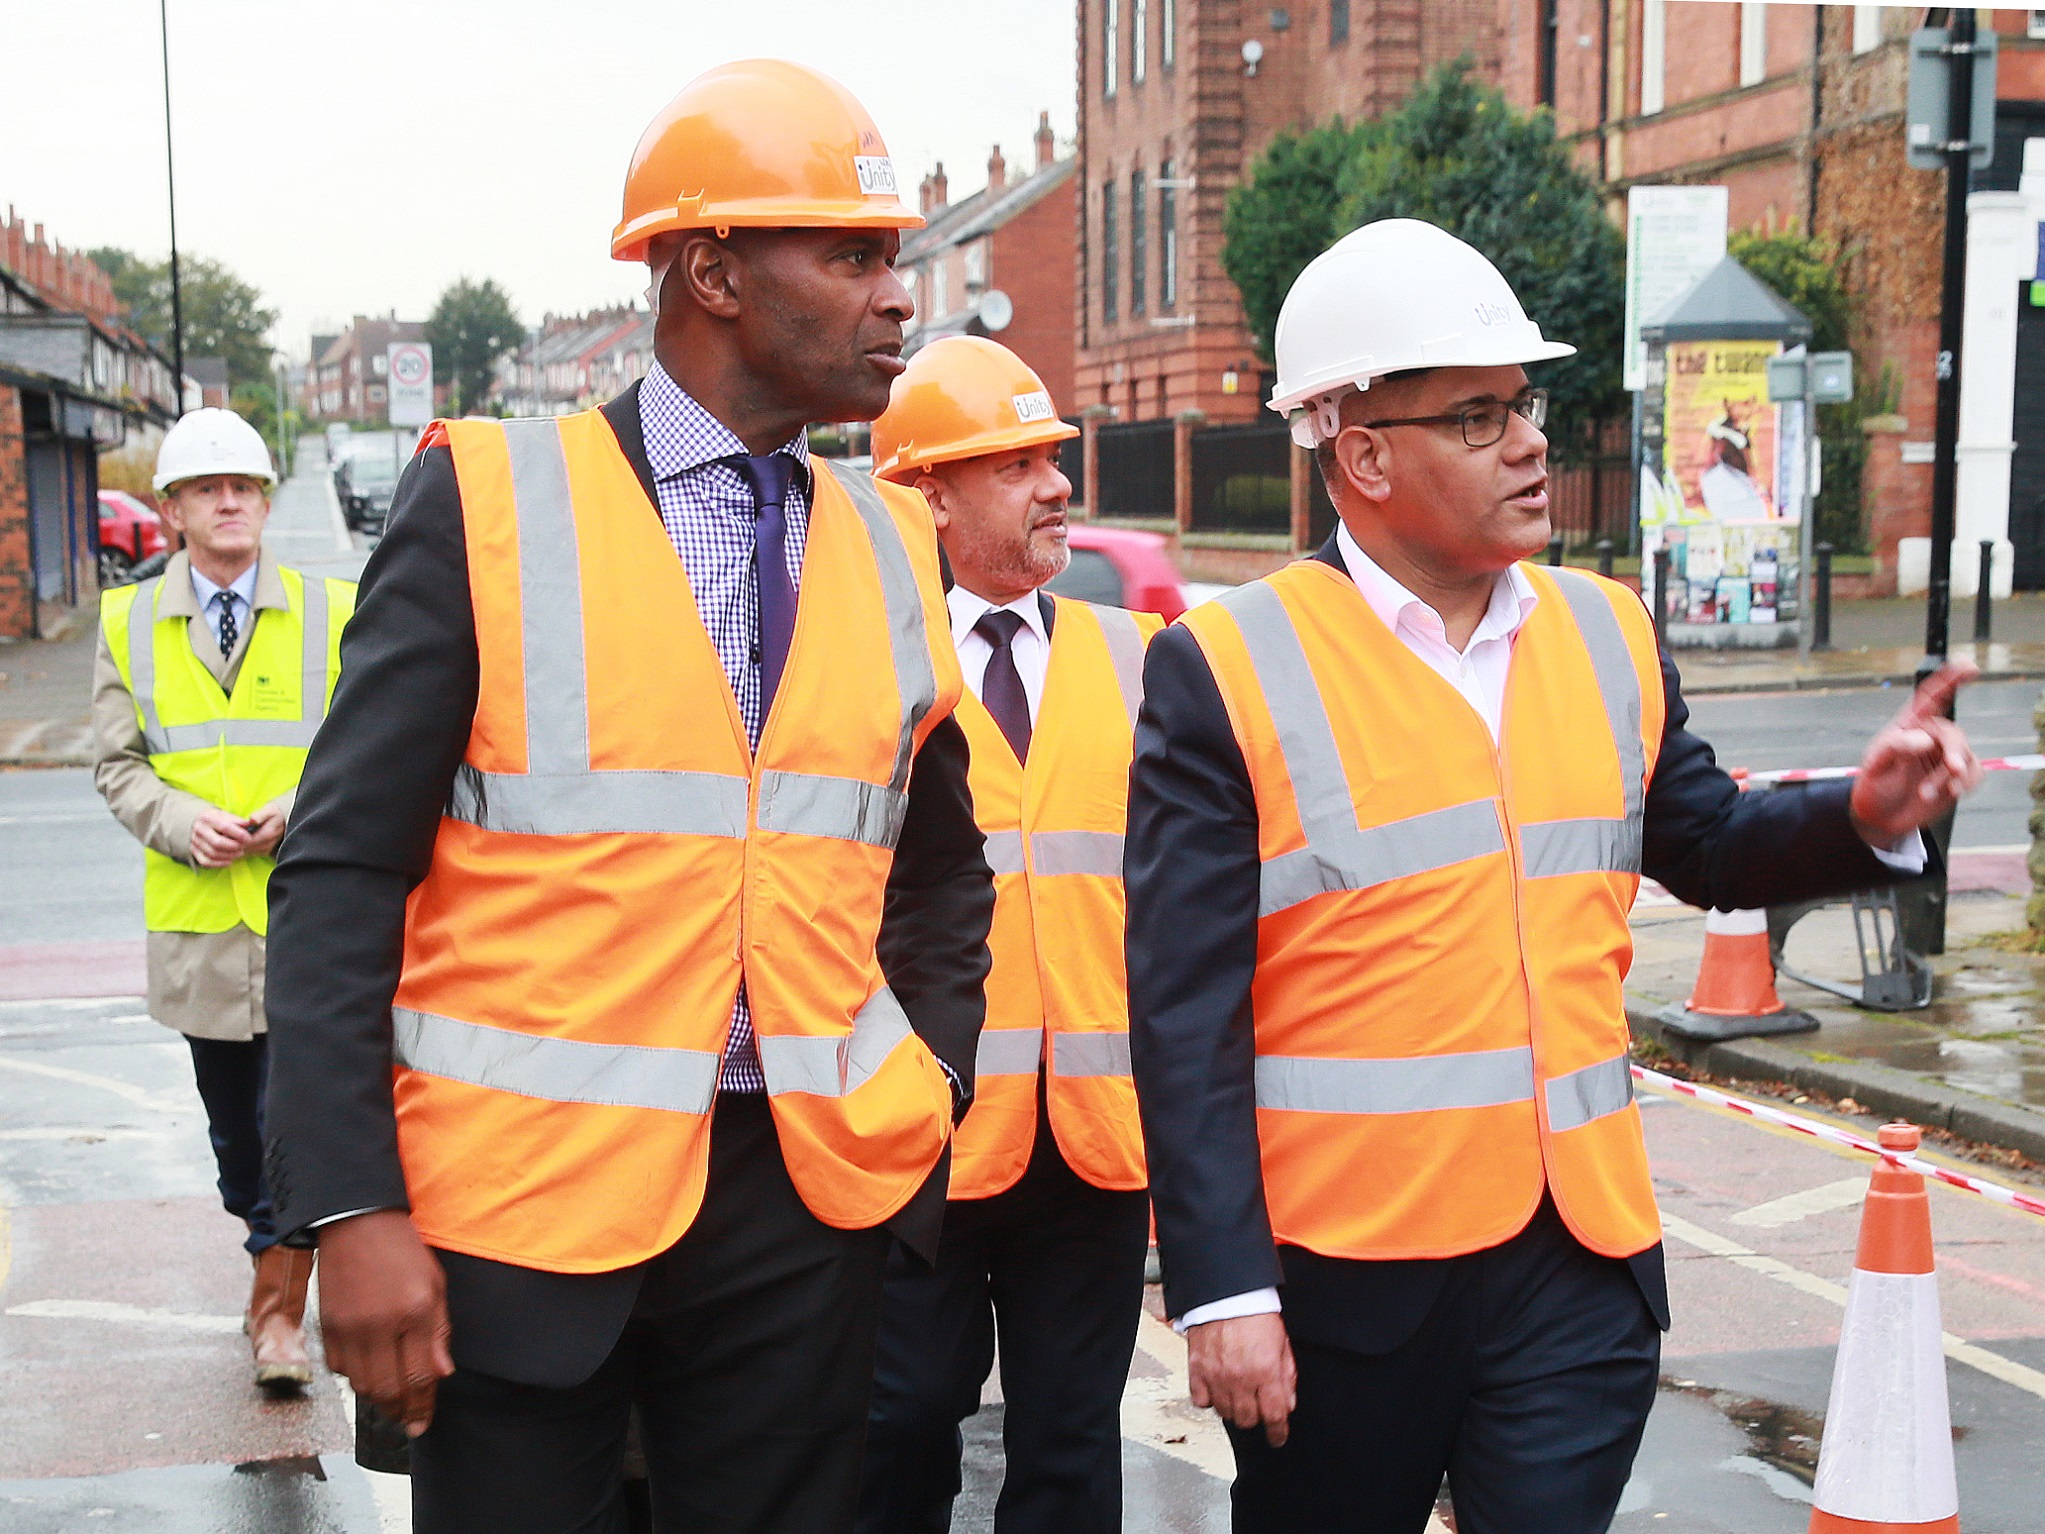 From right to left: Housing and Planning Minister Alok Sharma, Unity chief executive Ali Akbor and Unity regeneration director Wayne Noteman arrive at the soon-to-be-completed 146 Chapeltown Road affordable homes development in Leeds